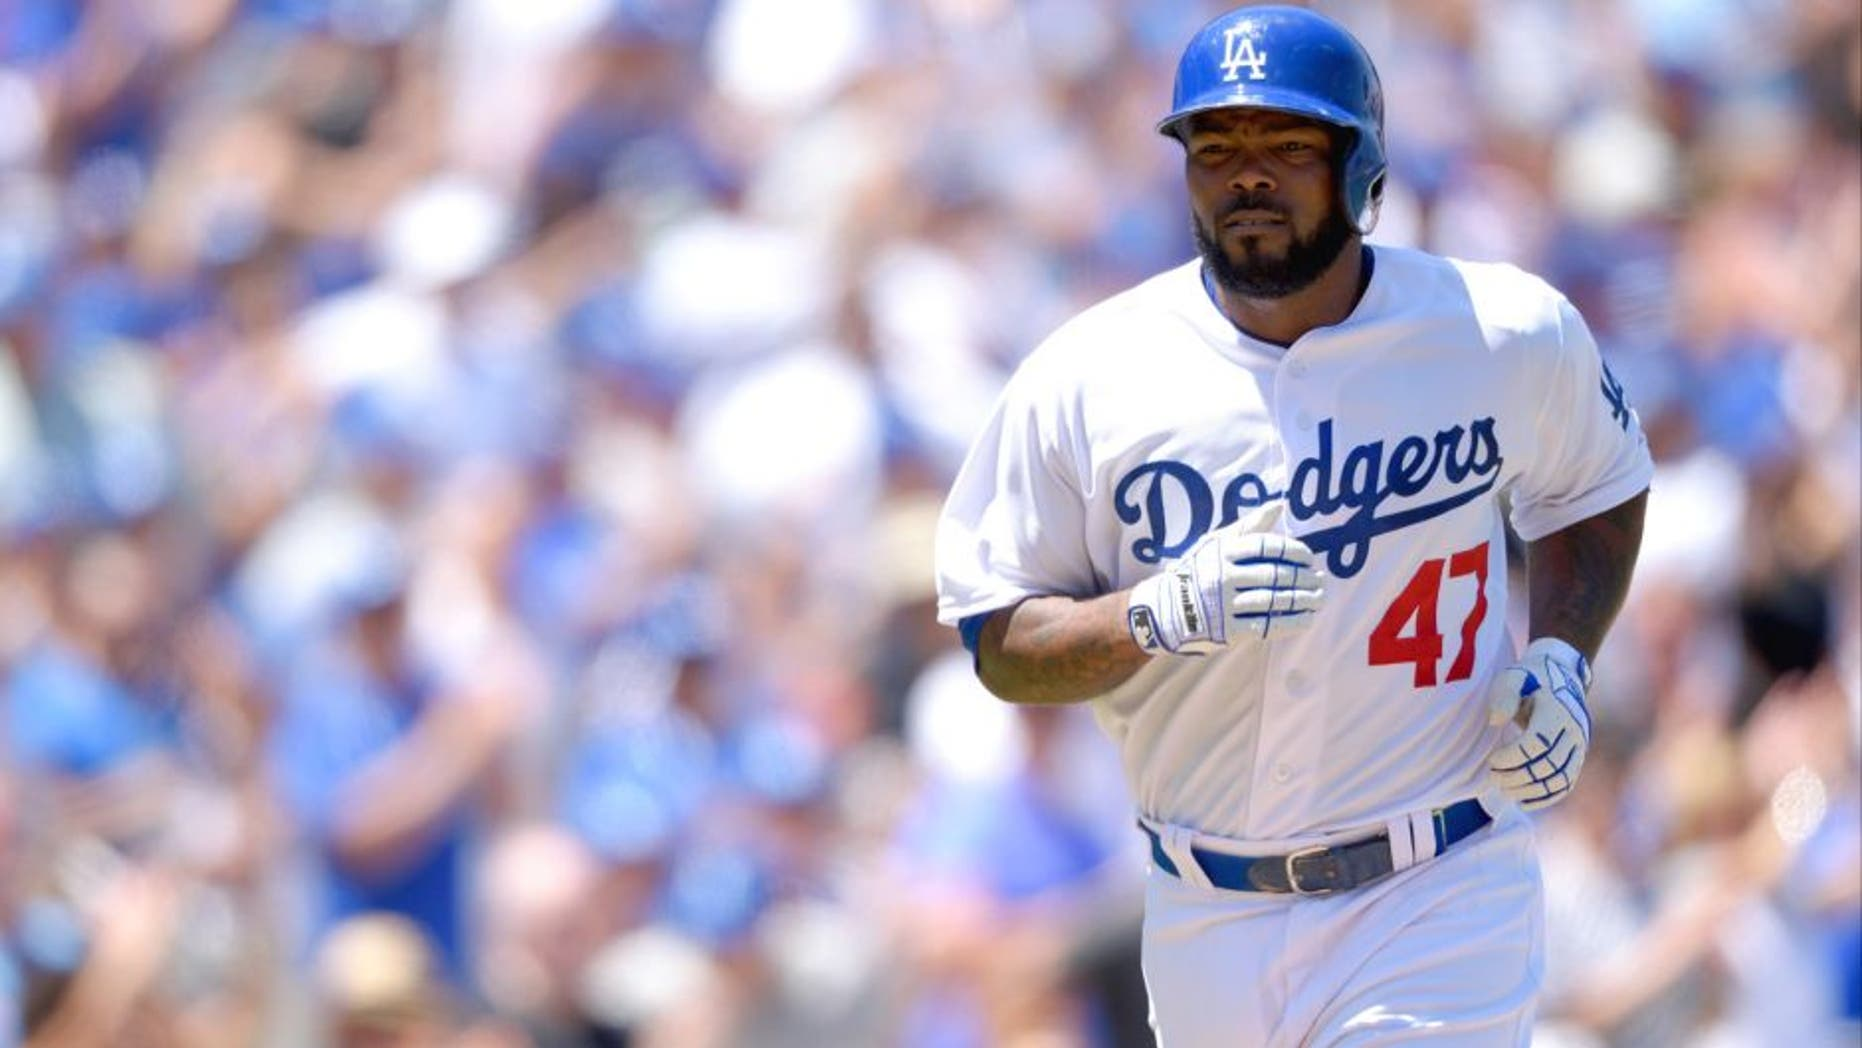 LOS ANGELES, CA - AUGUST 2: Howie Kendrick #47 of the Los Angeles Dodgers runs during the game against the Los Angeles Angels of Anaheim at Dodger Stadium on August 2, 2015 in Los Angeles, California. (Photo by Matt Brown/Angels Baseball LP/Getty Images)